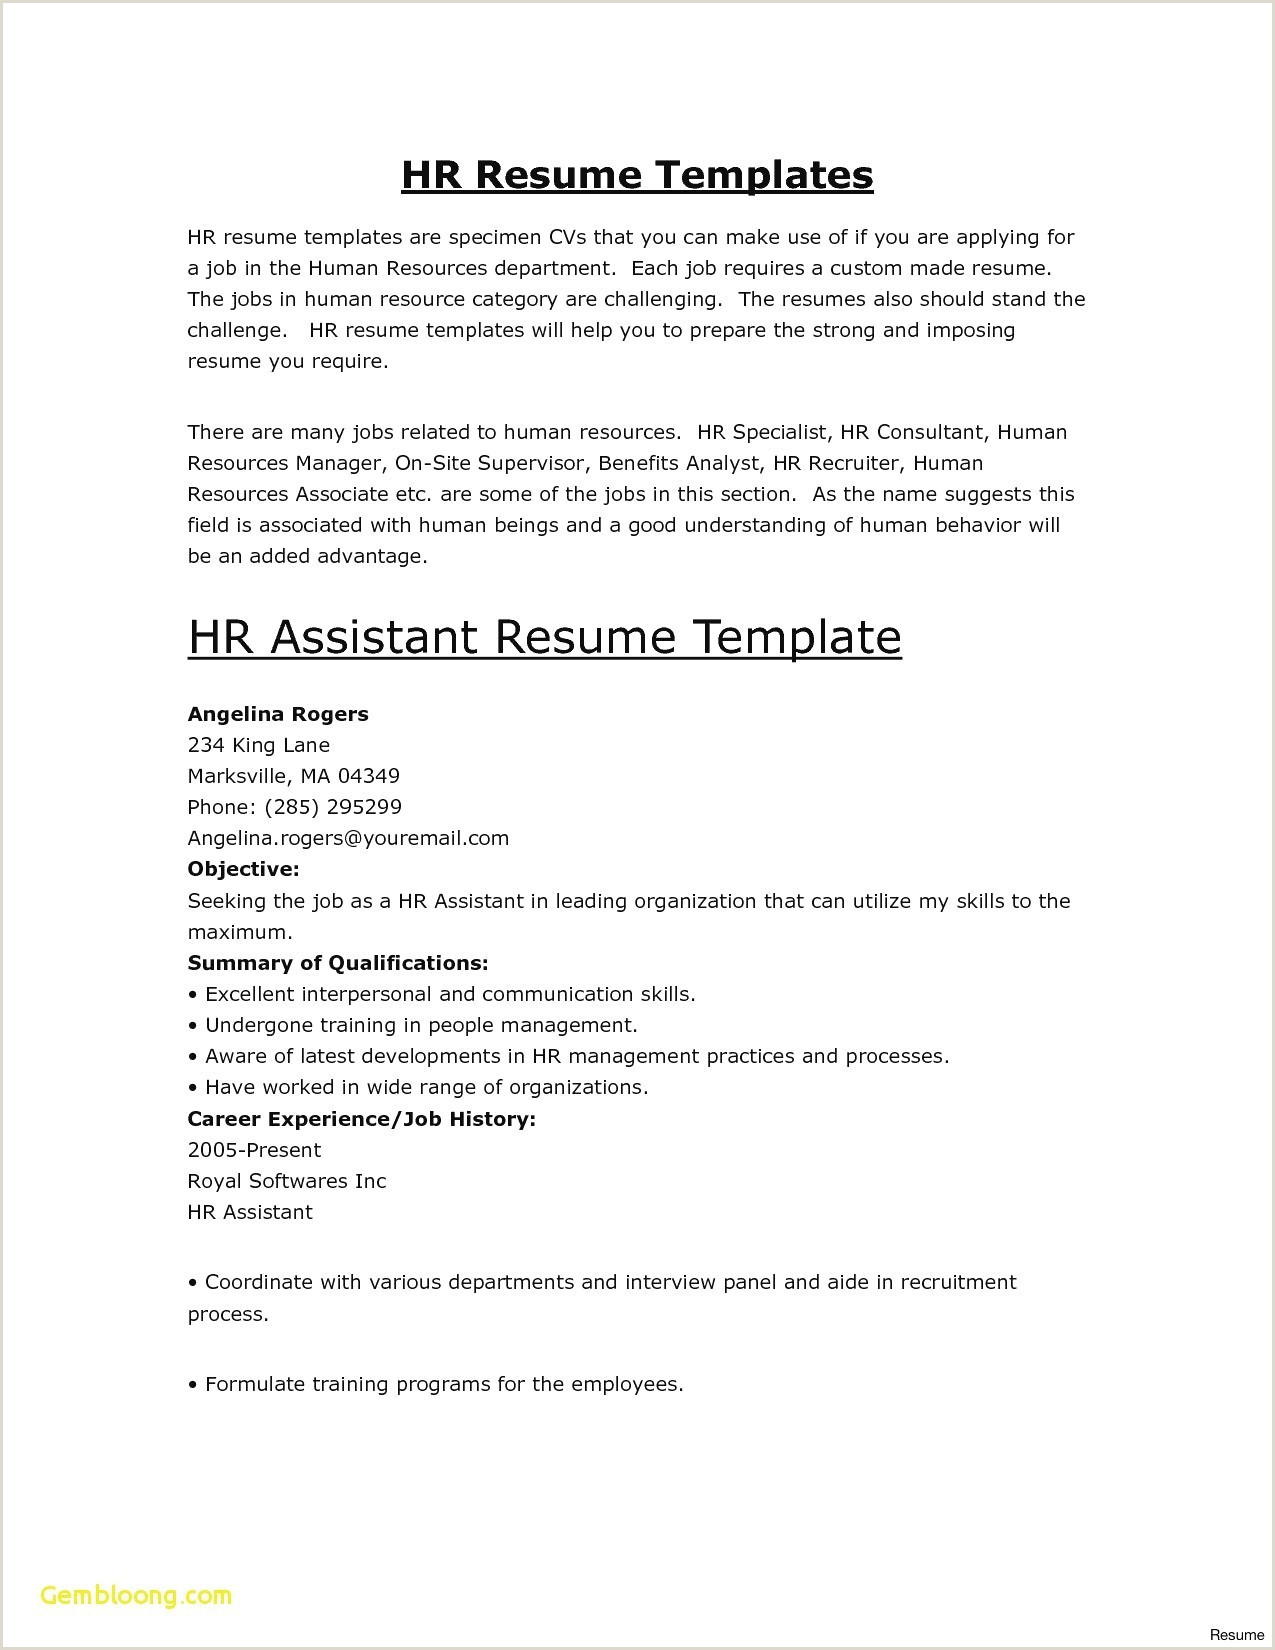 How to Write A Good Cv and Cover Letter Unique Professional